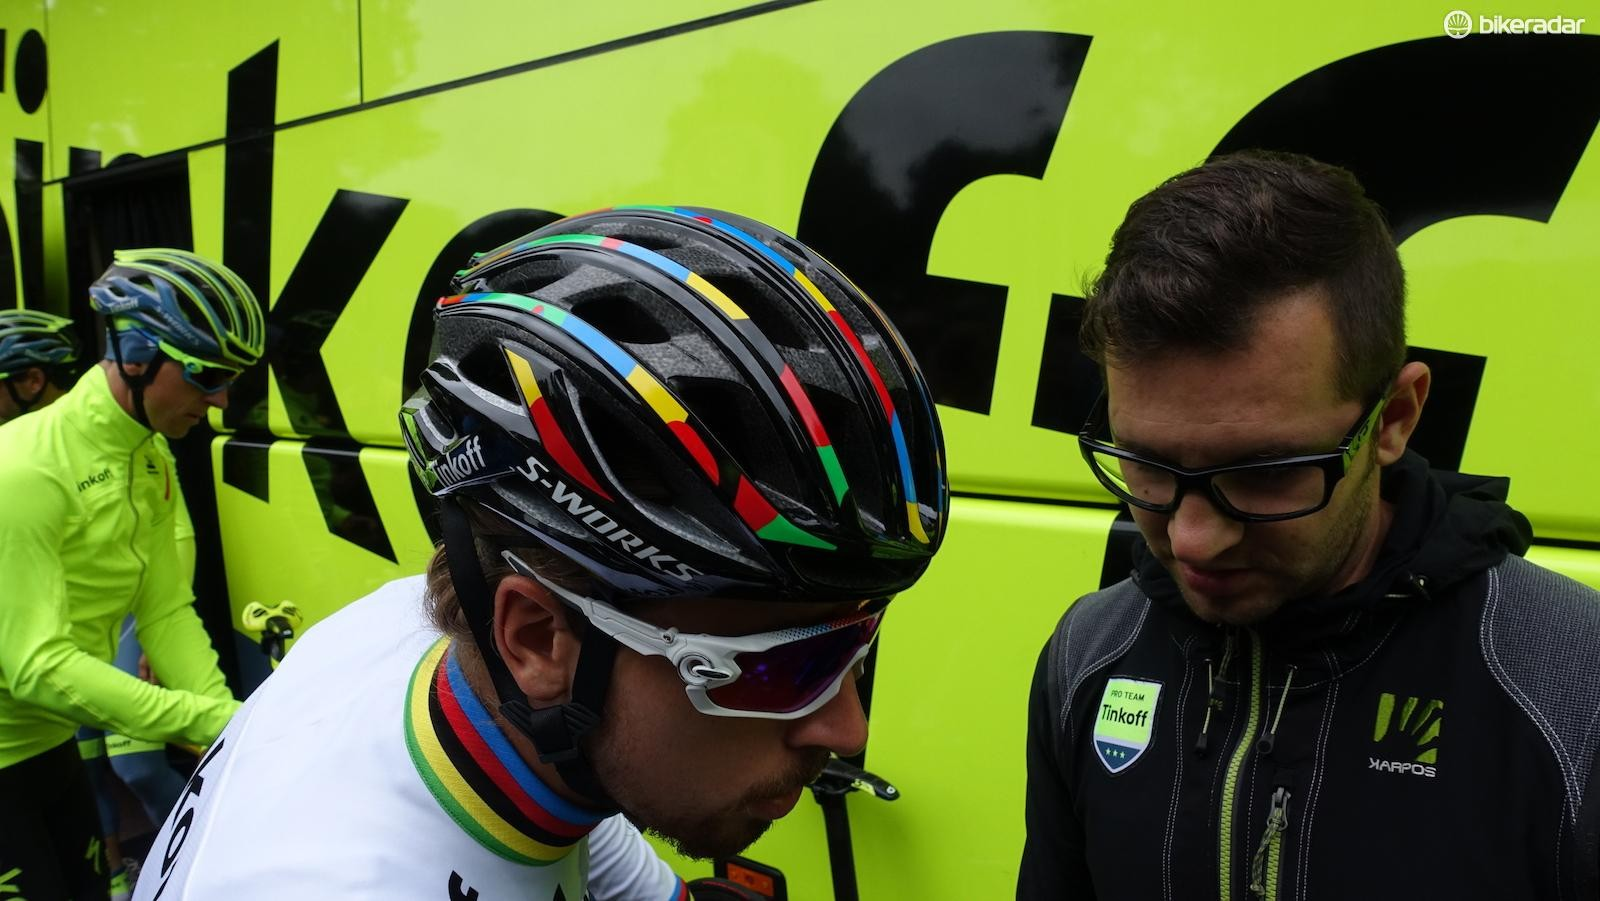 Specialized showed its new Prevail helmet to the world ahead of the Tour de France. Astana, Etixx-Quick Step and Tinkoff riders trained in the new lid in the days prior to the race